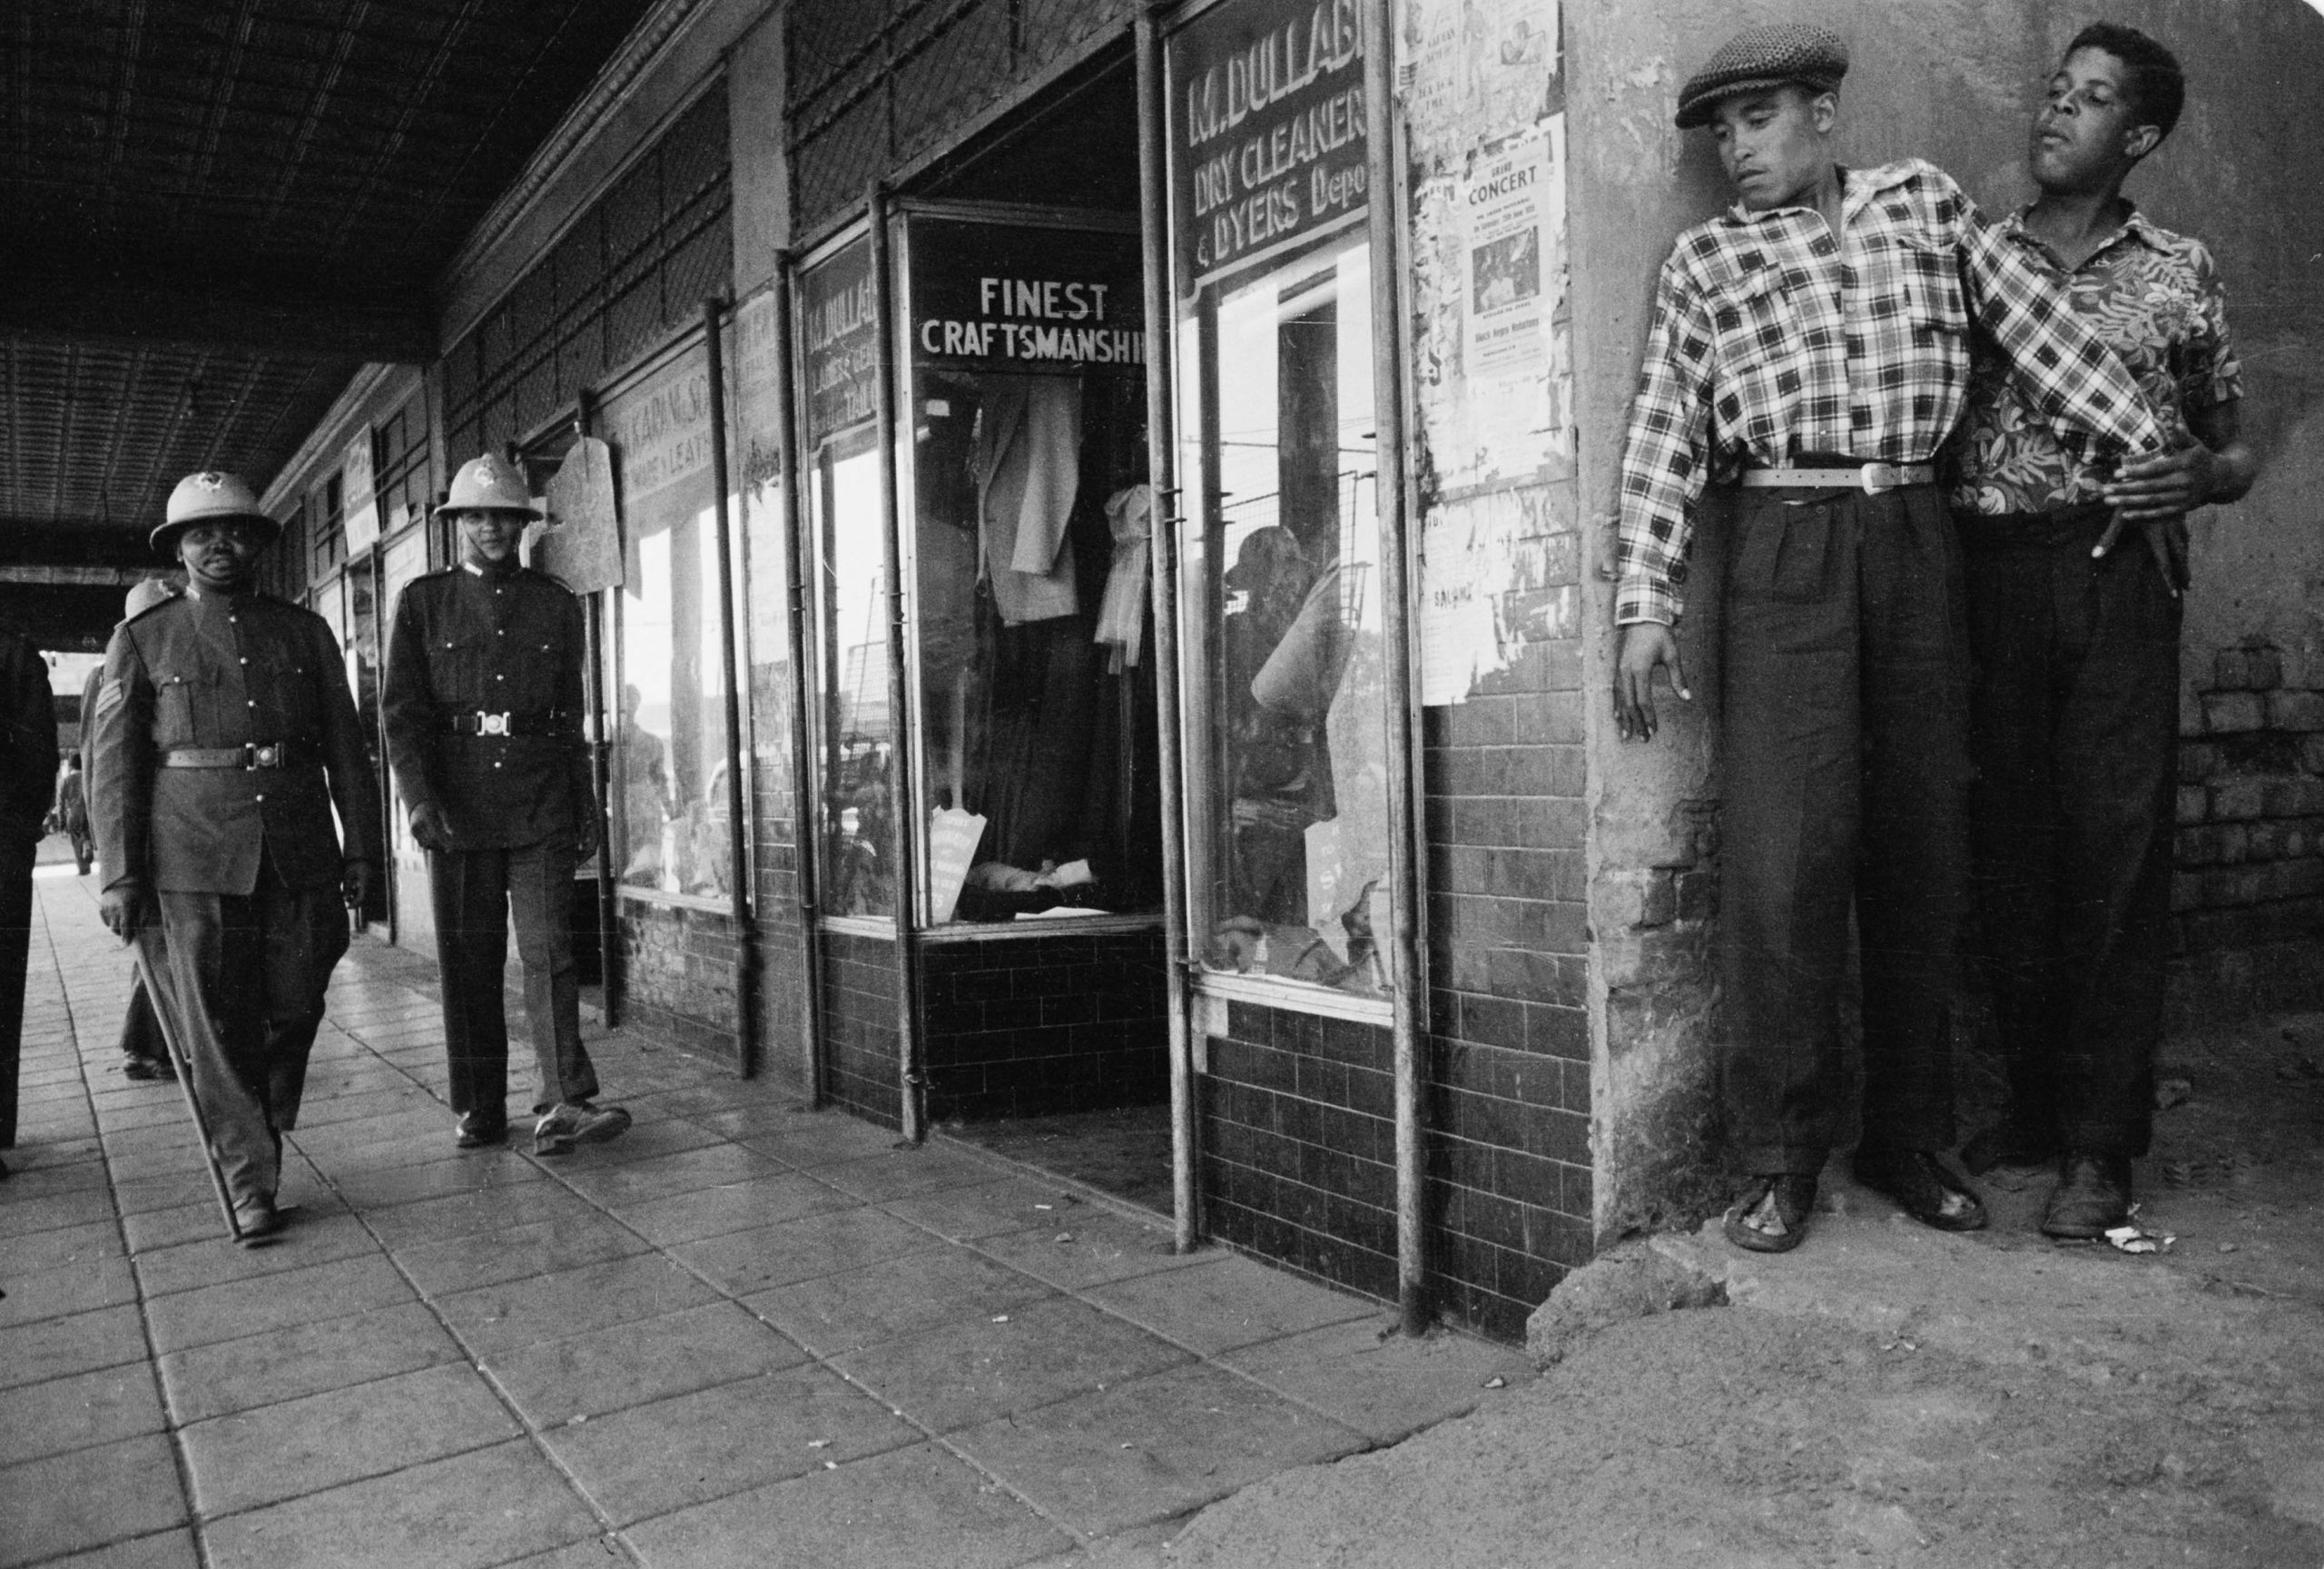 Circa 1955: Two men hide from the police in Johannesburg. If caught in the city without a pass, black persons were subject to arrest. (Photograph courtesy of the Jürgen Schadeberg estate)